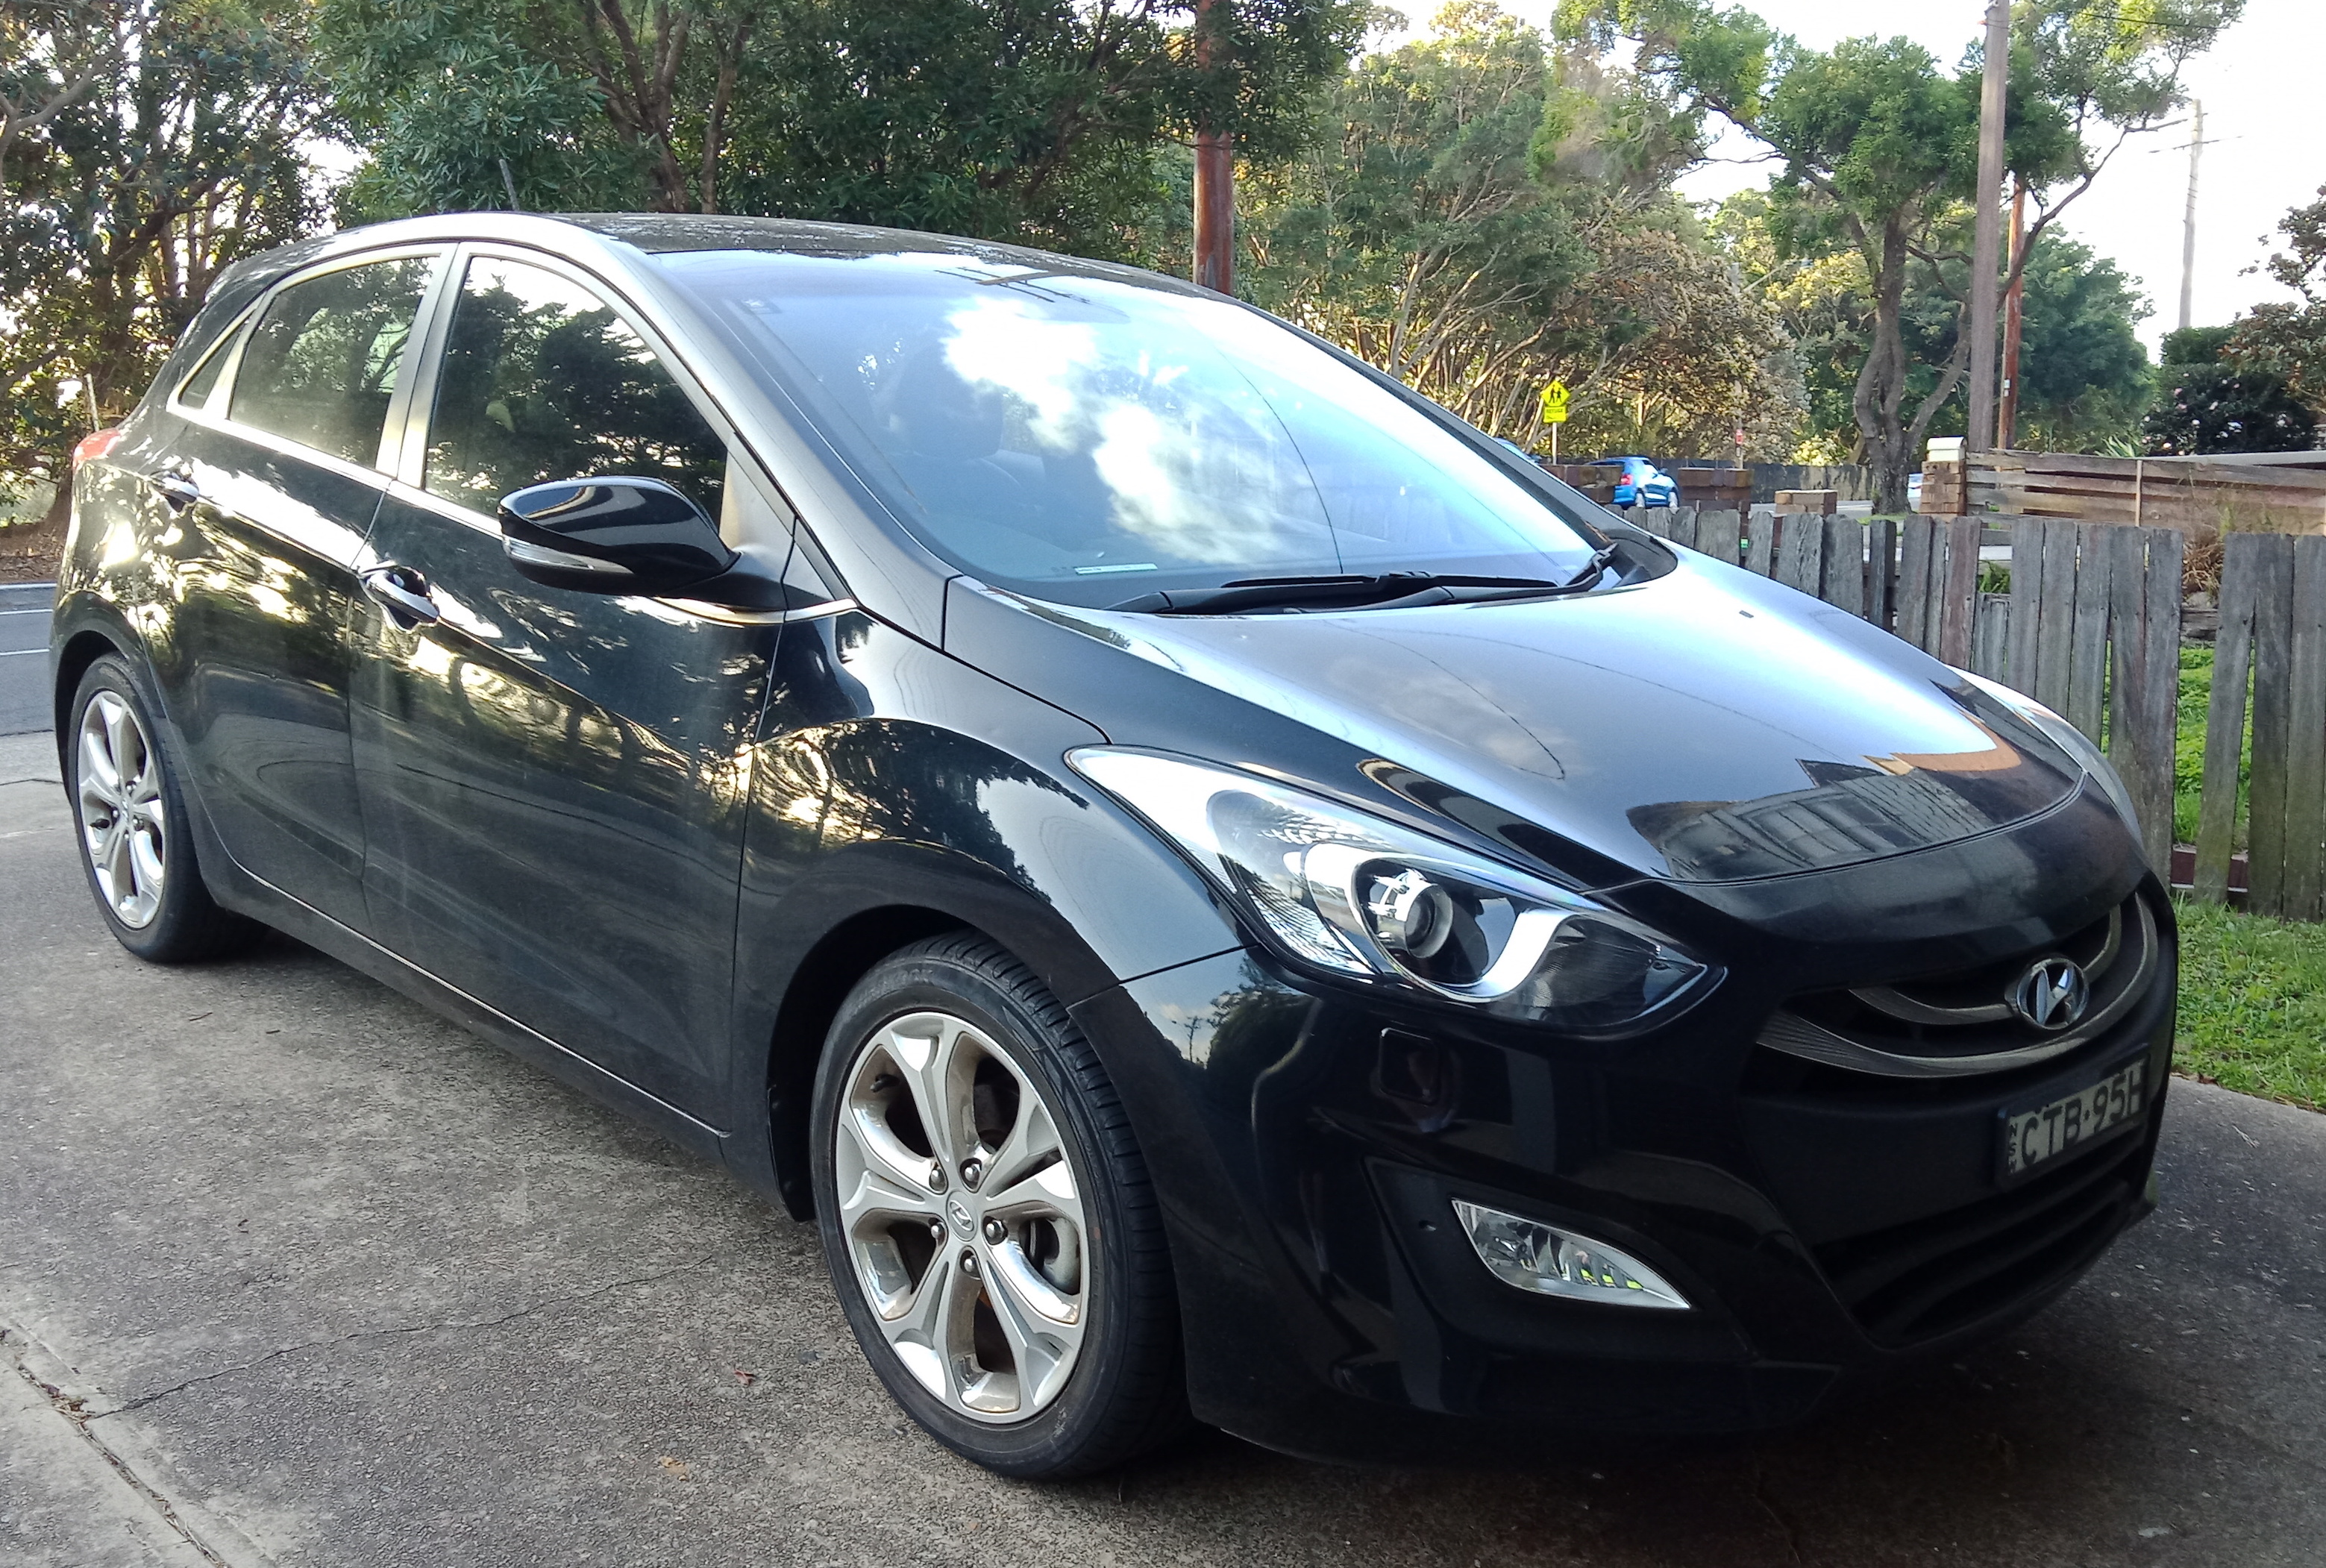 Picture of Sinead's 2014 Hyundai I30